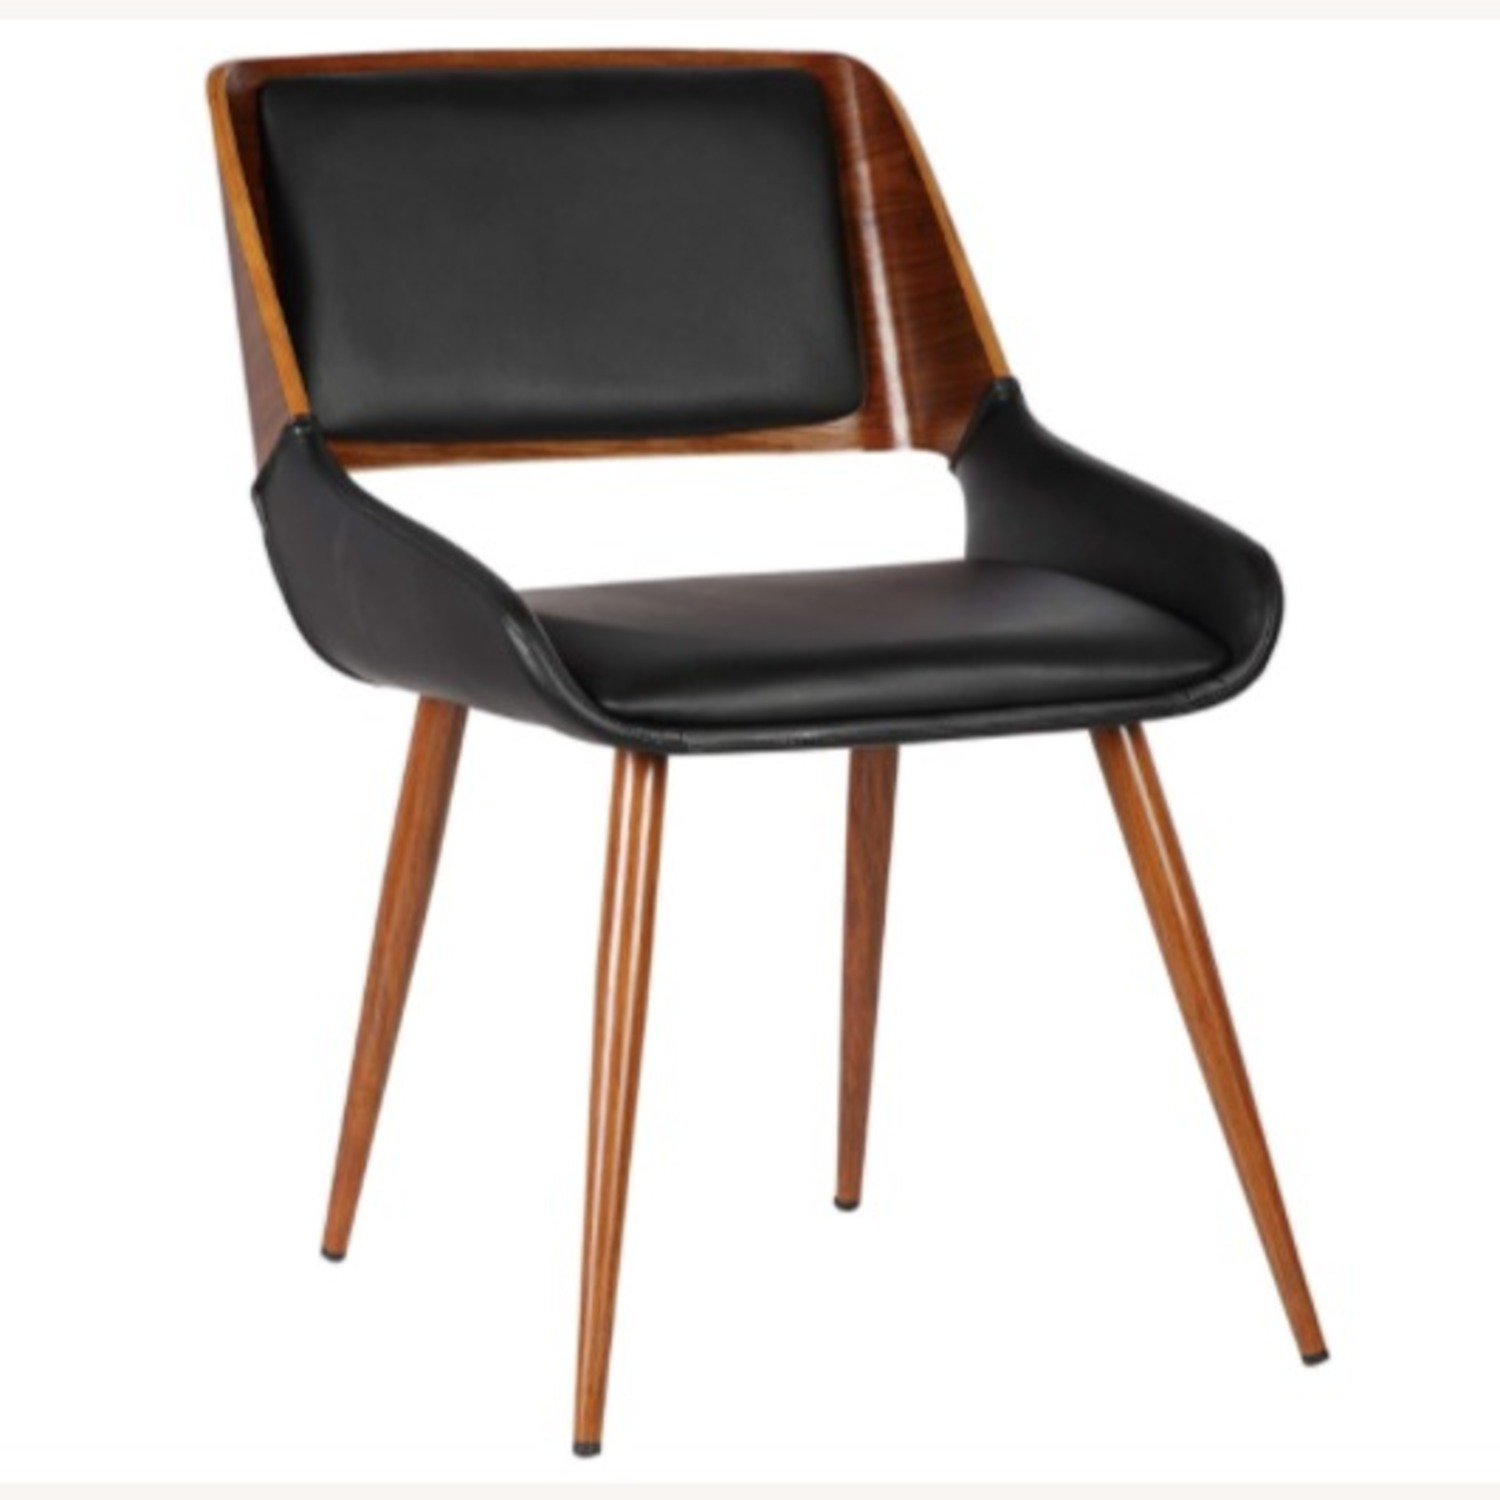 Mid Century Modern Faux Leather Dining Chair - image-1